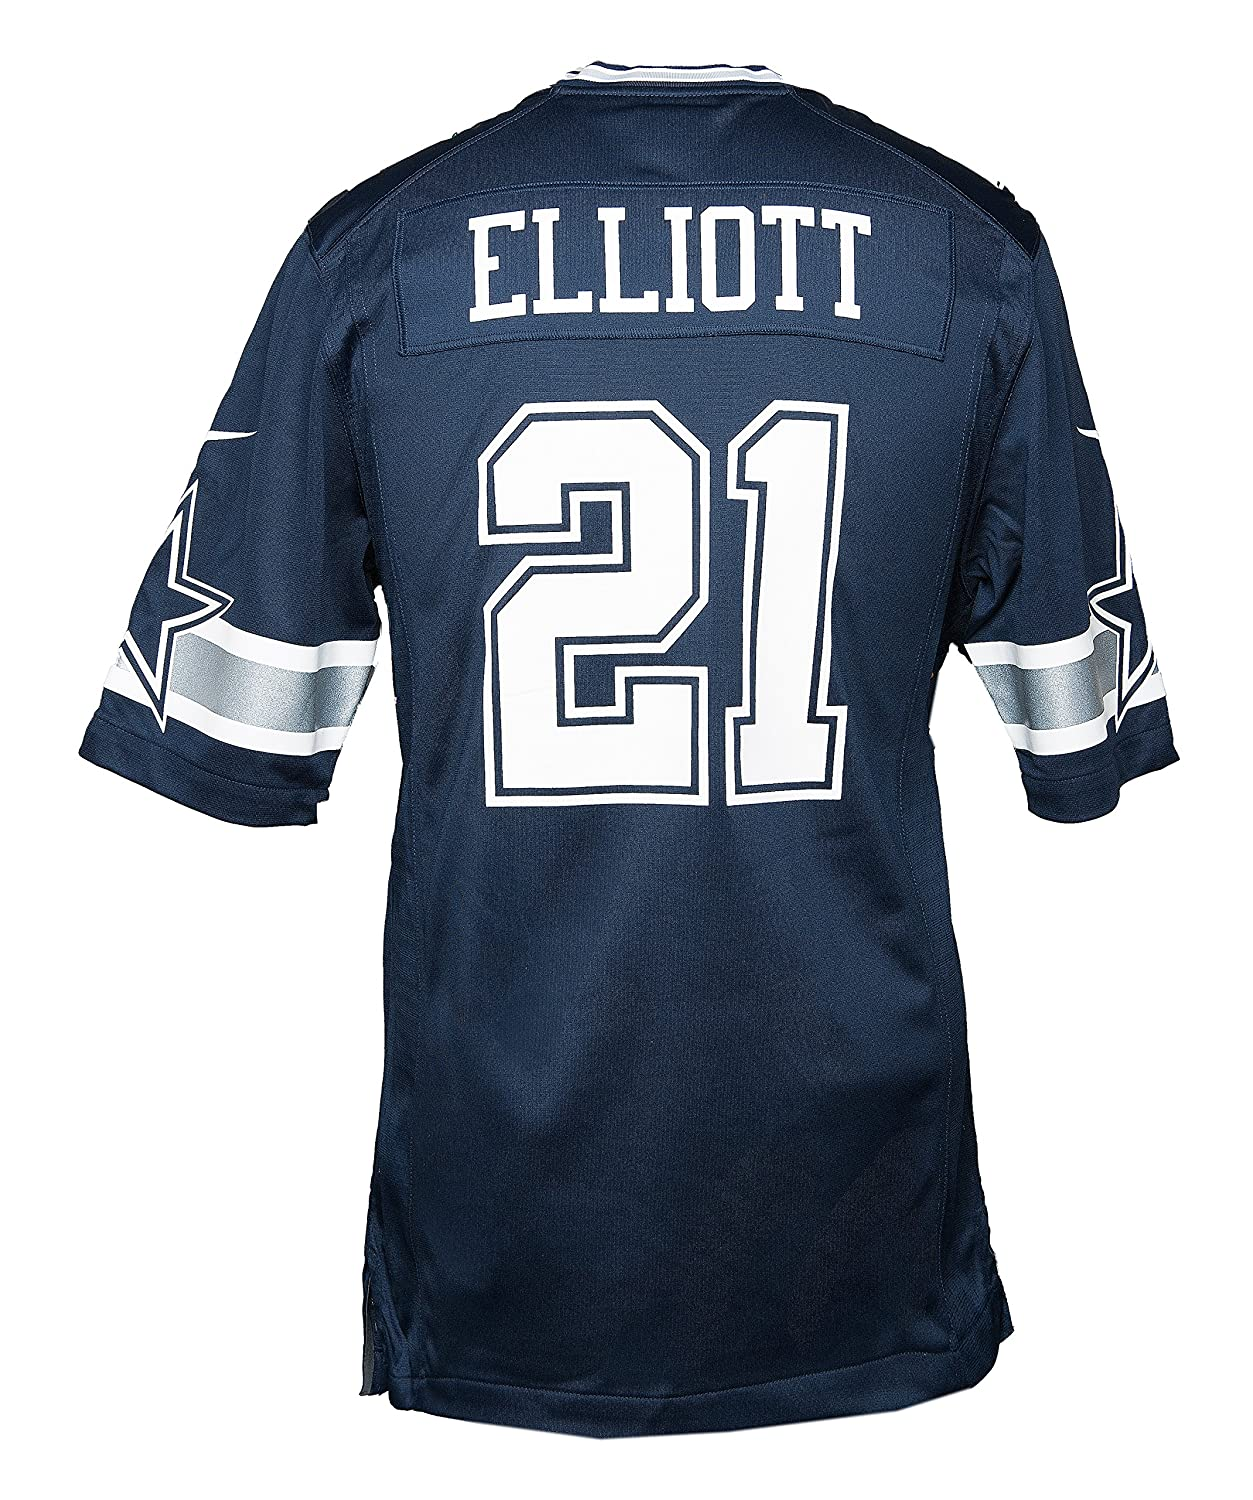 596acf7f57c Amazon.com : Dallas Cowboys Ezekiel Elliott Nike Navy Game Replica Jersey :  Clothing